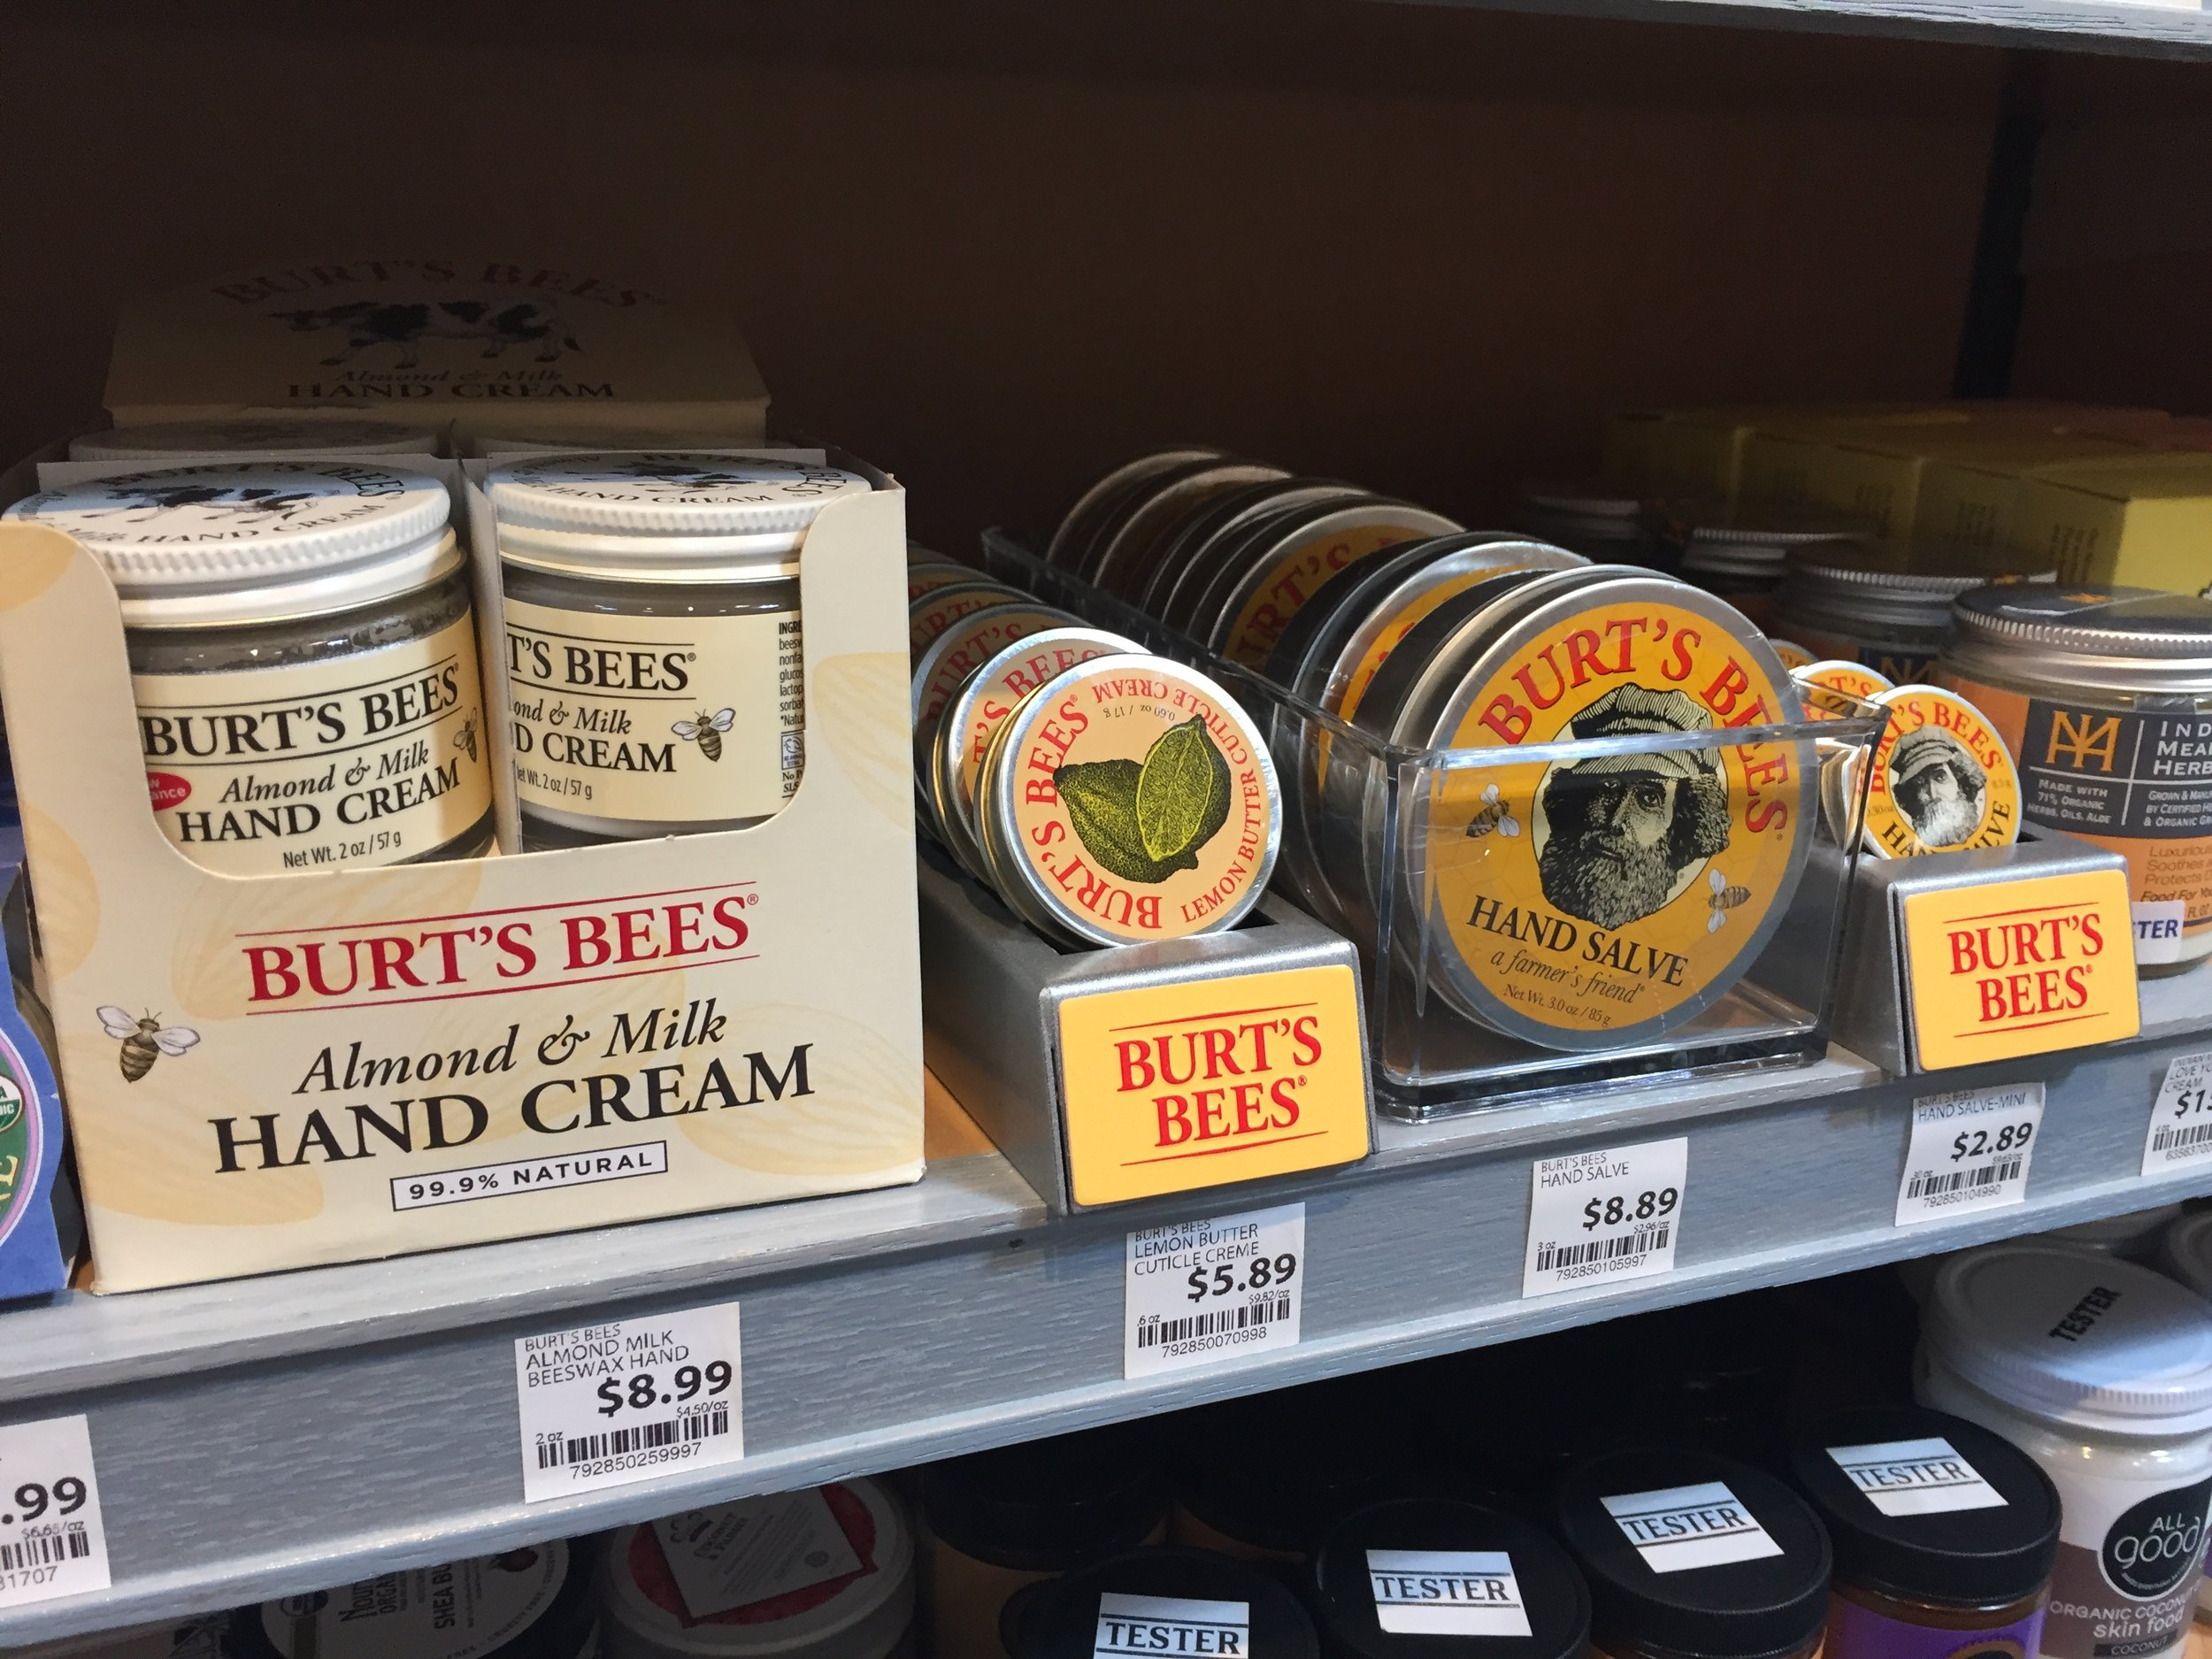 Burt's Bees (from my home state of North Carolina.)